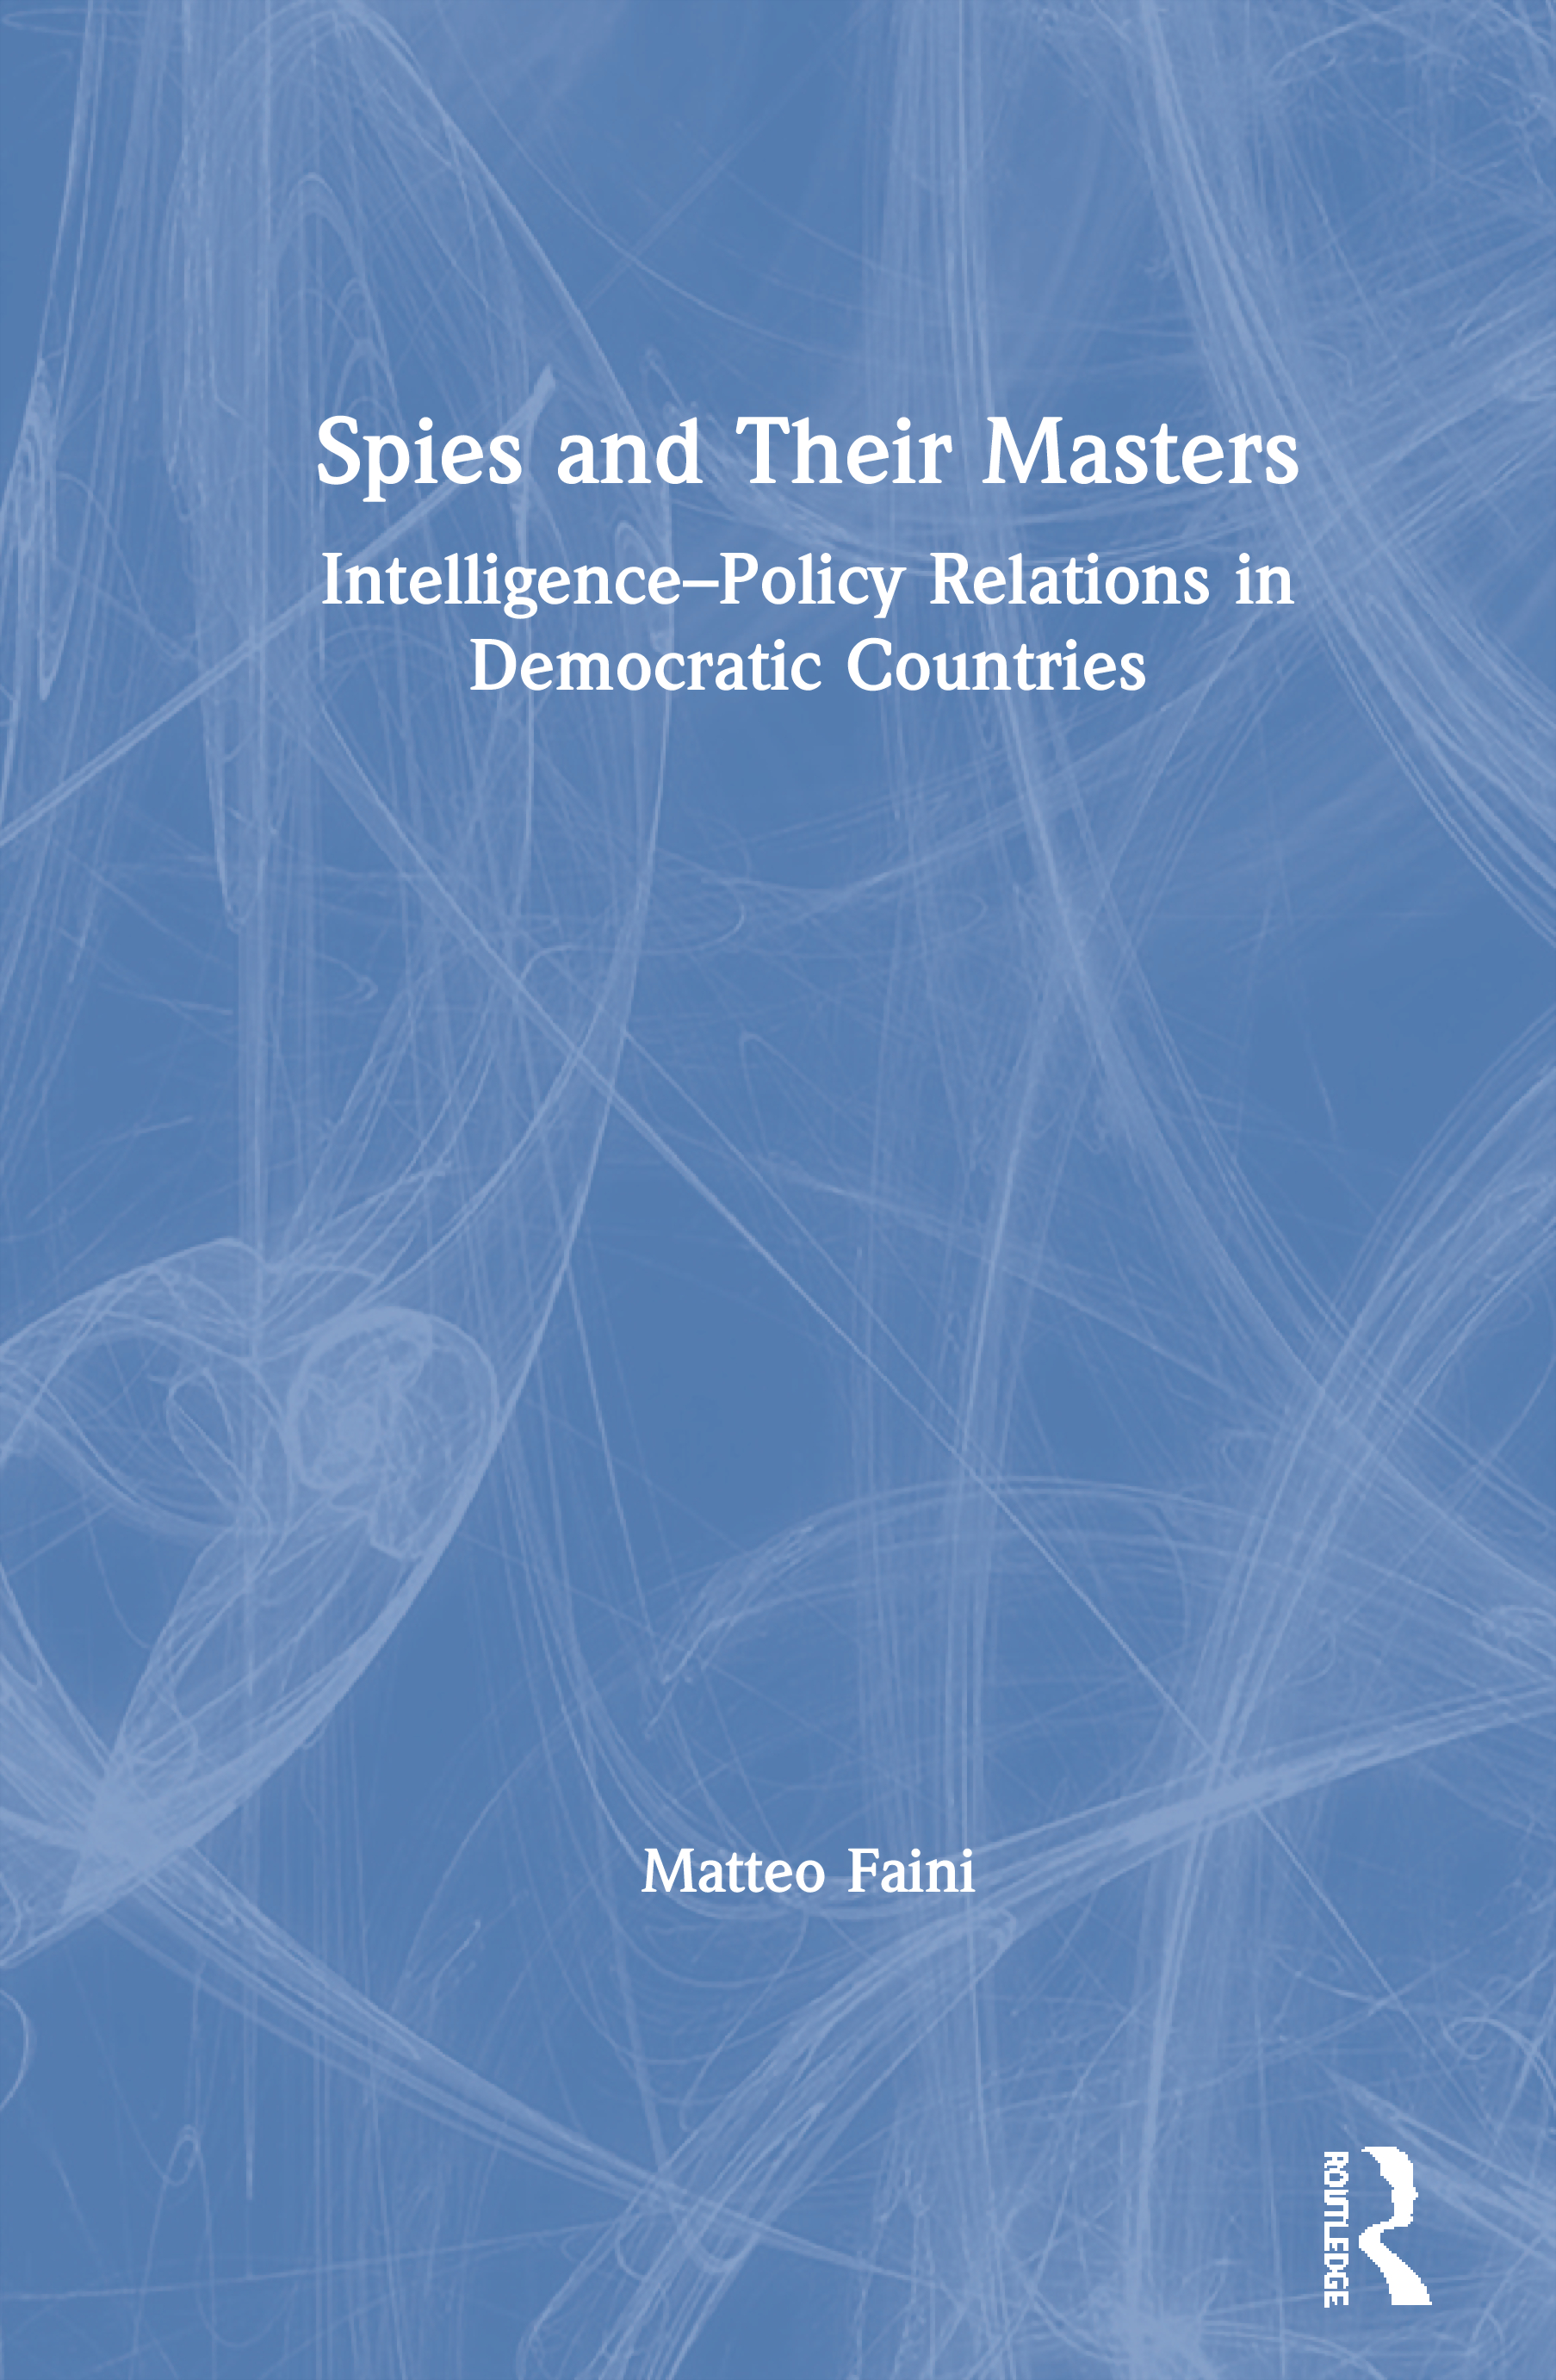 Spies and Their Masters: Intelligence-Policy Relations in Democratic Countries book cover